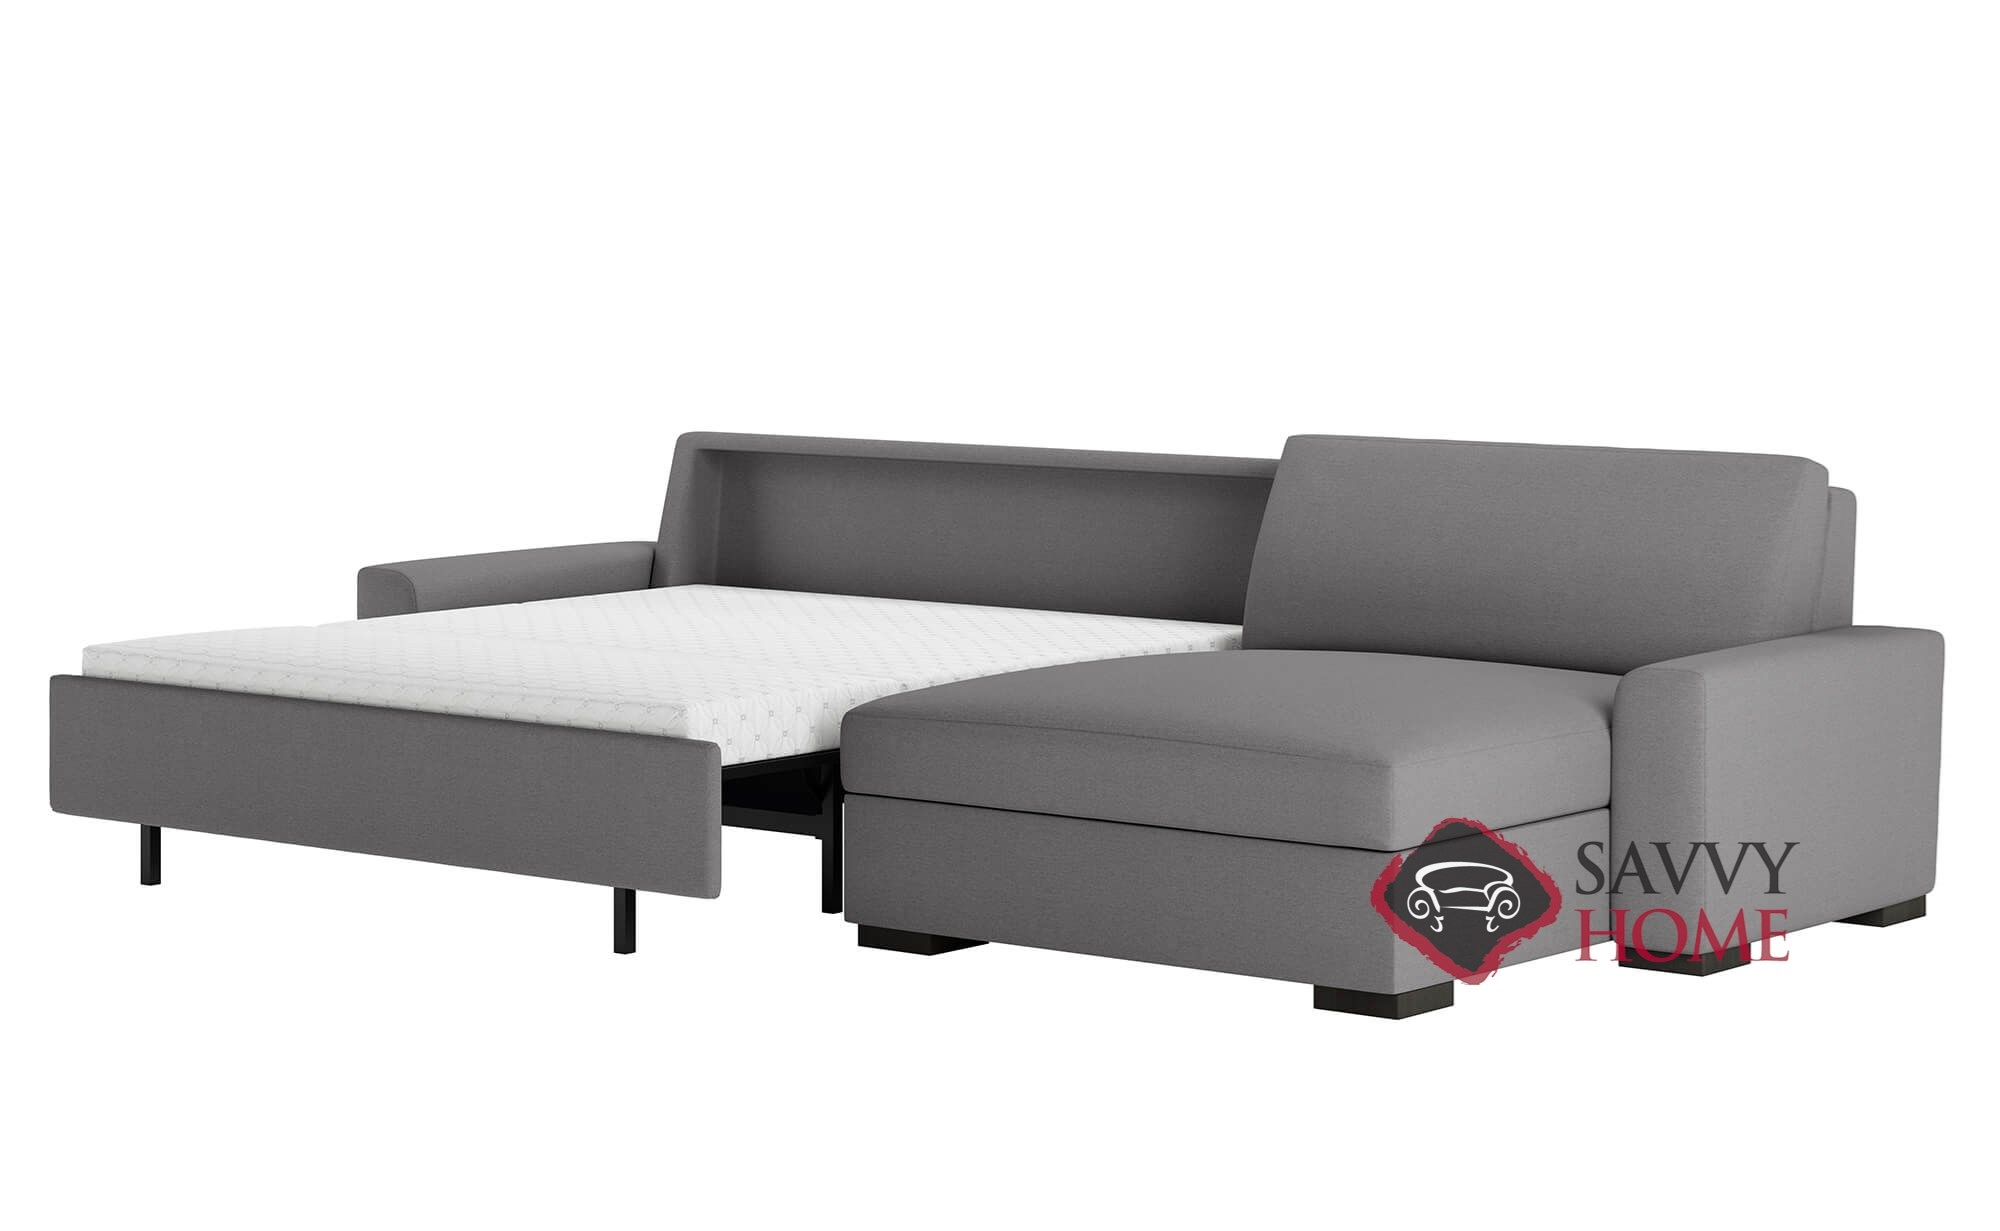 Olson Leather Sleeper Sofas Queen By American Leather Is